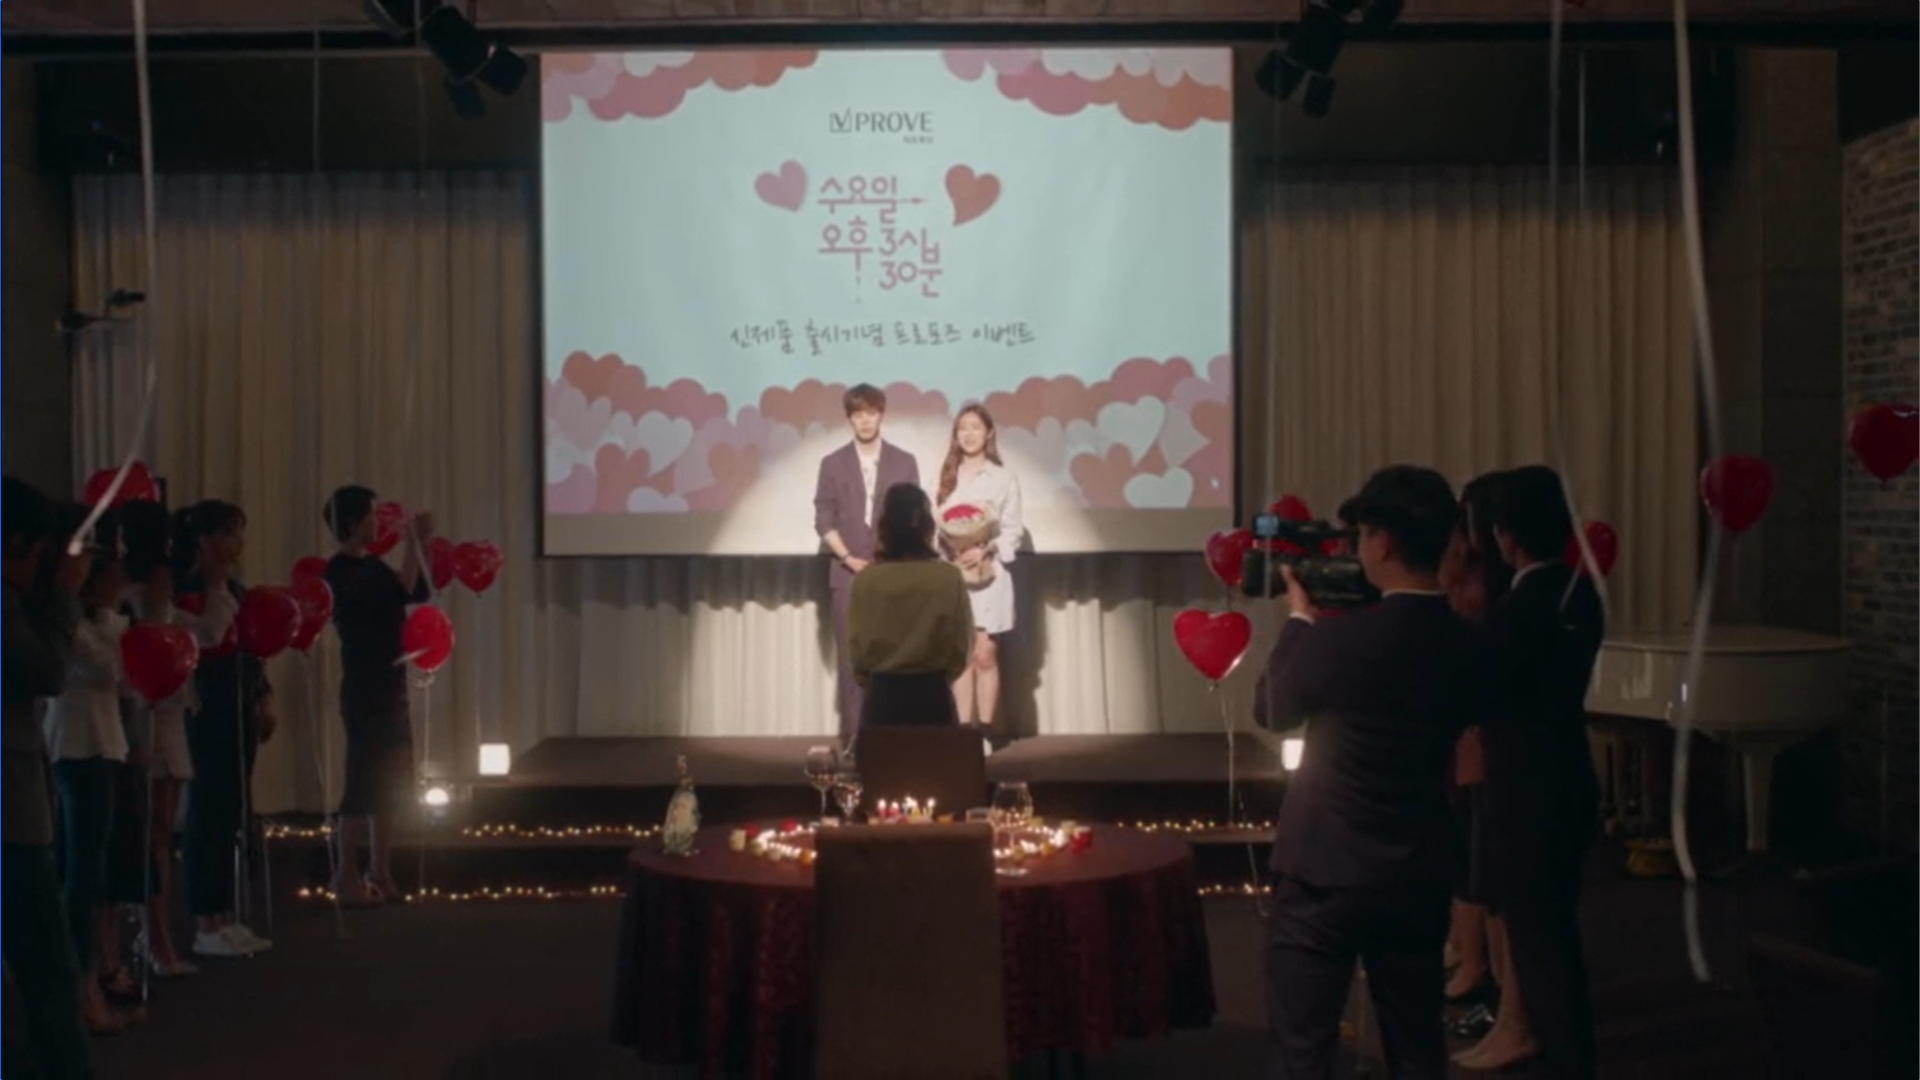 Wednesday 3:30 PM Yoon Jae-won and Gong Na-yeon hooking at proposal event